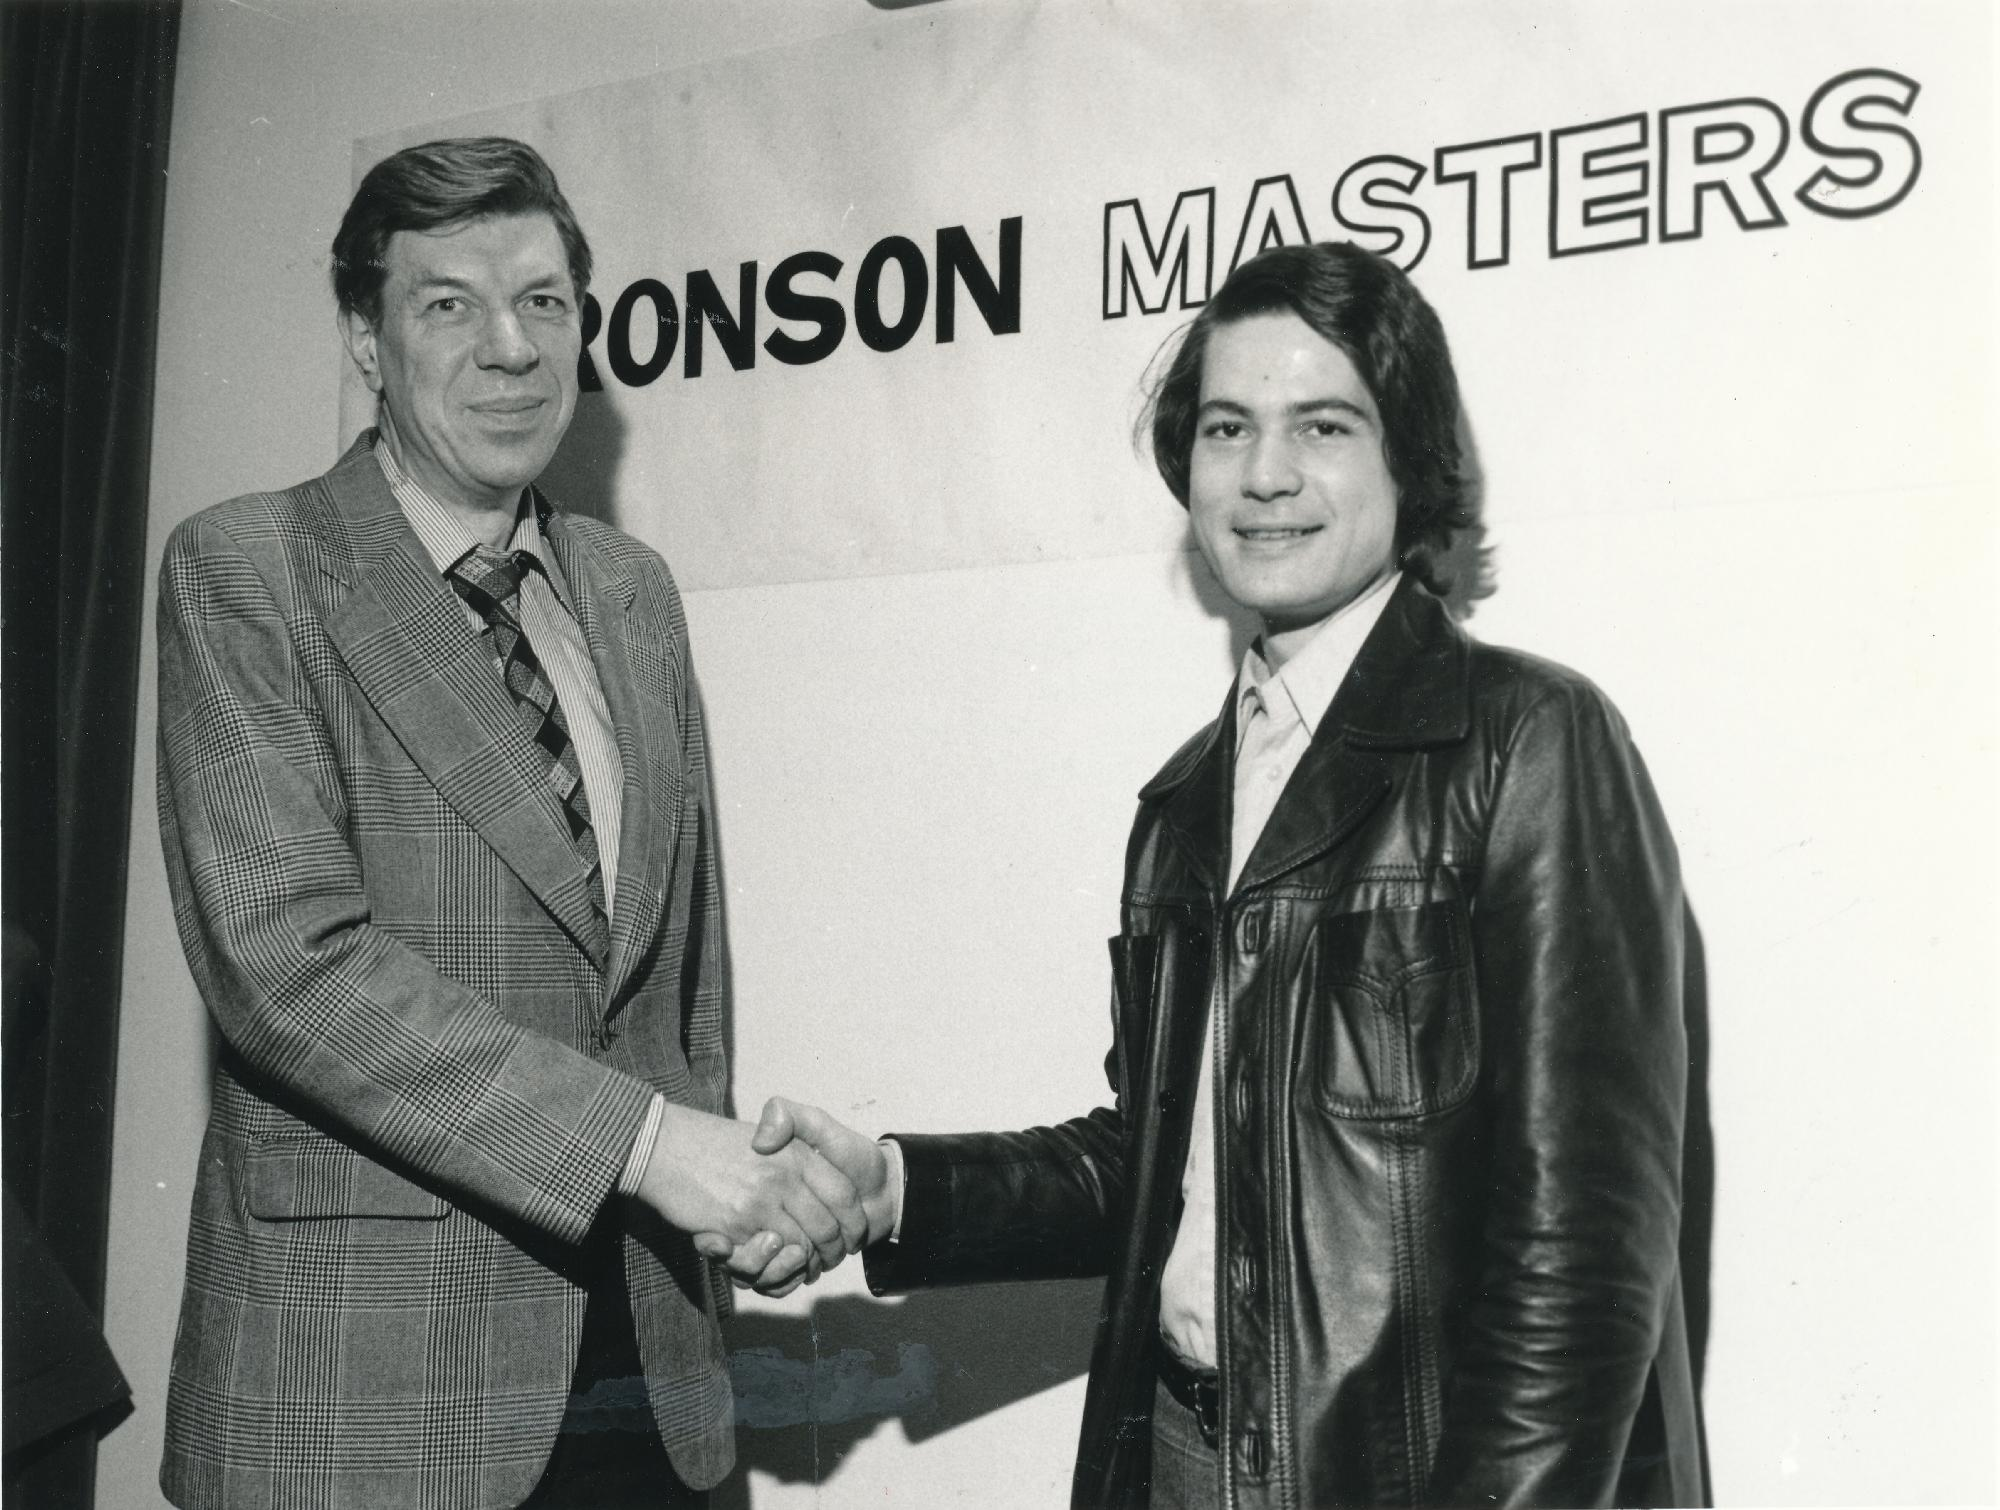 Joint winners of the 1978 Aaronson Masters : Michael Franklin and french IM Aldo Haik